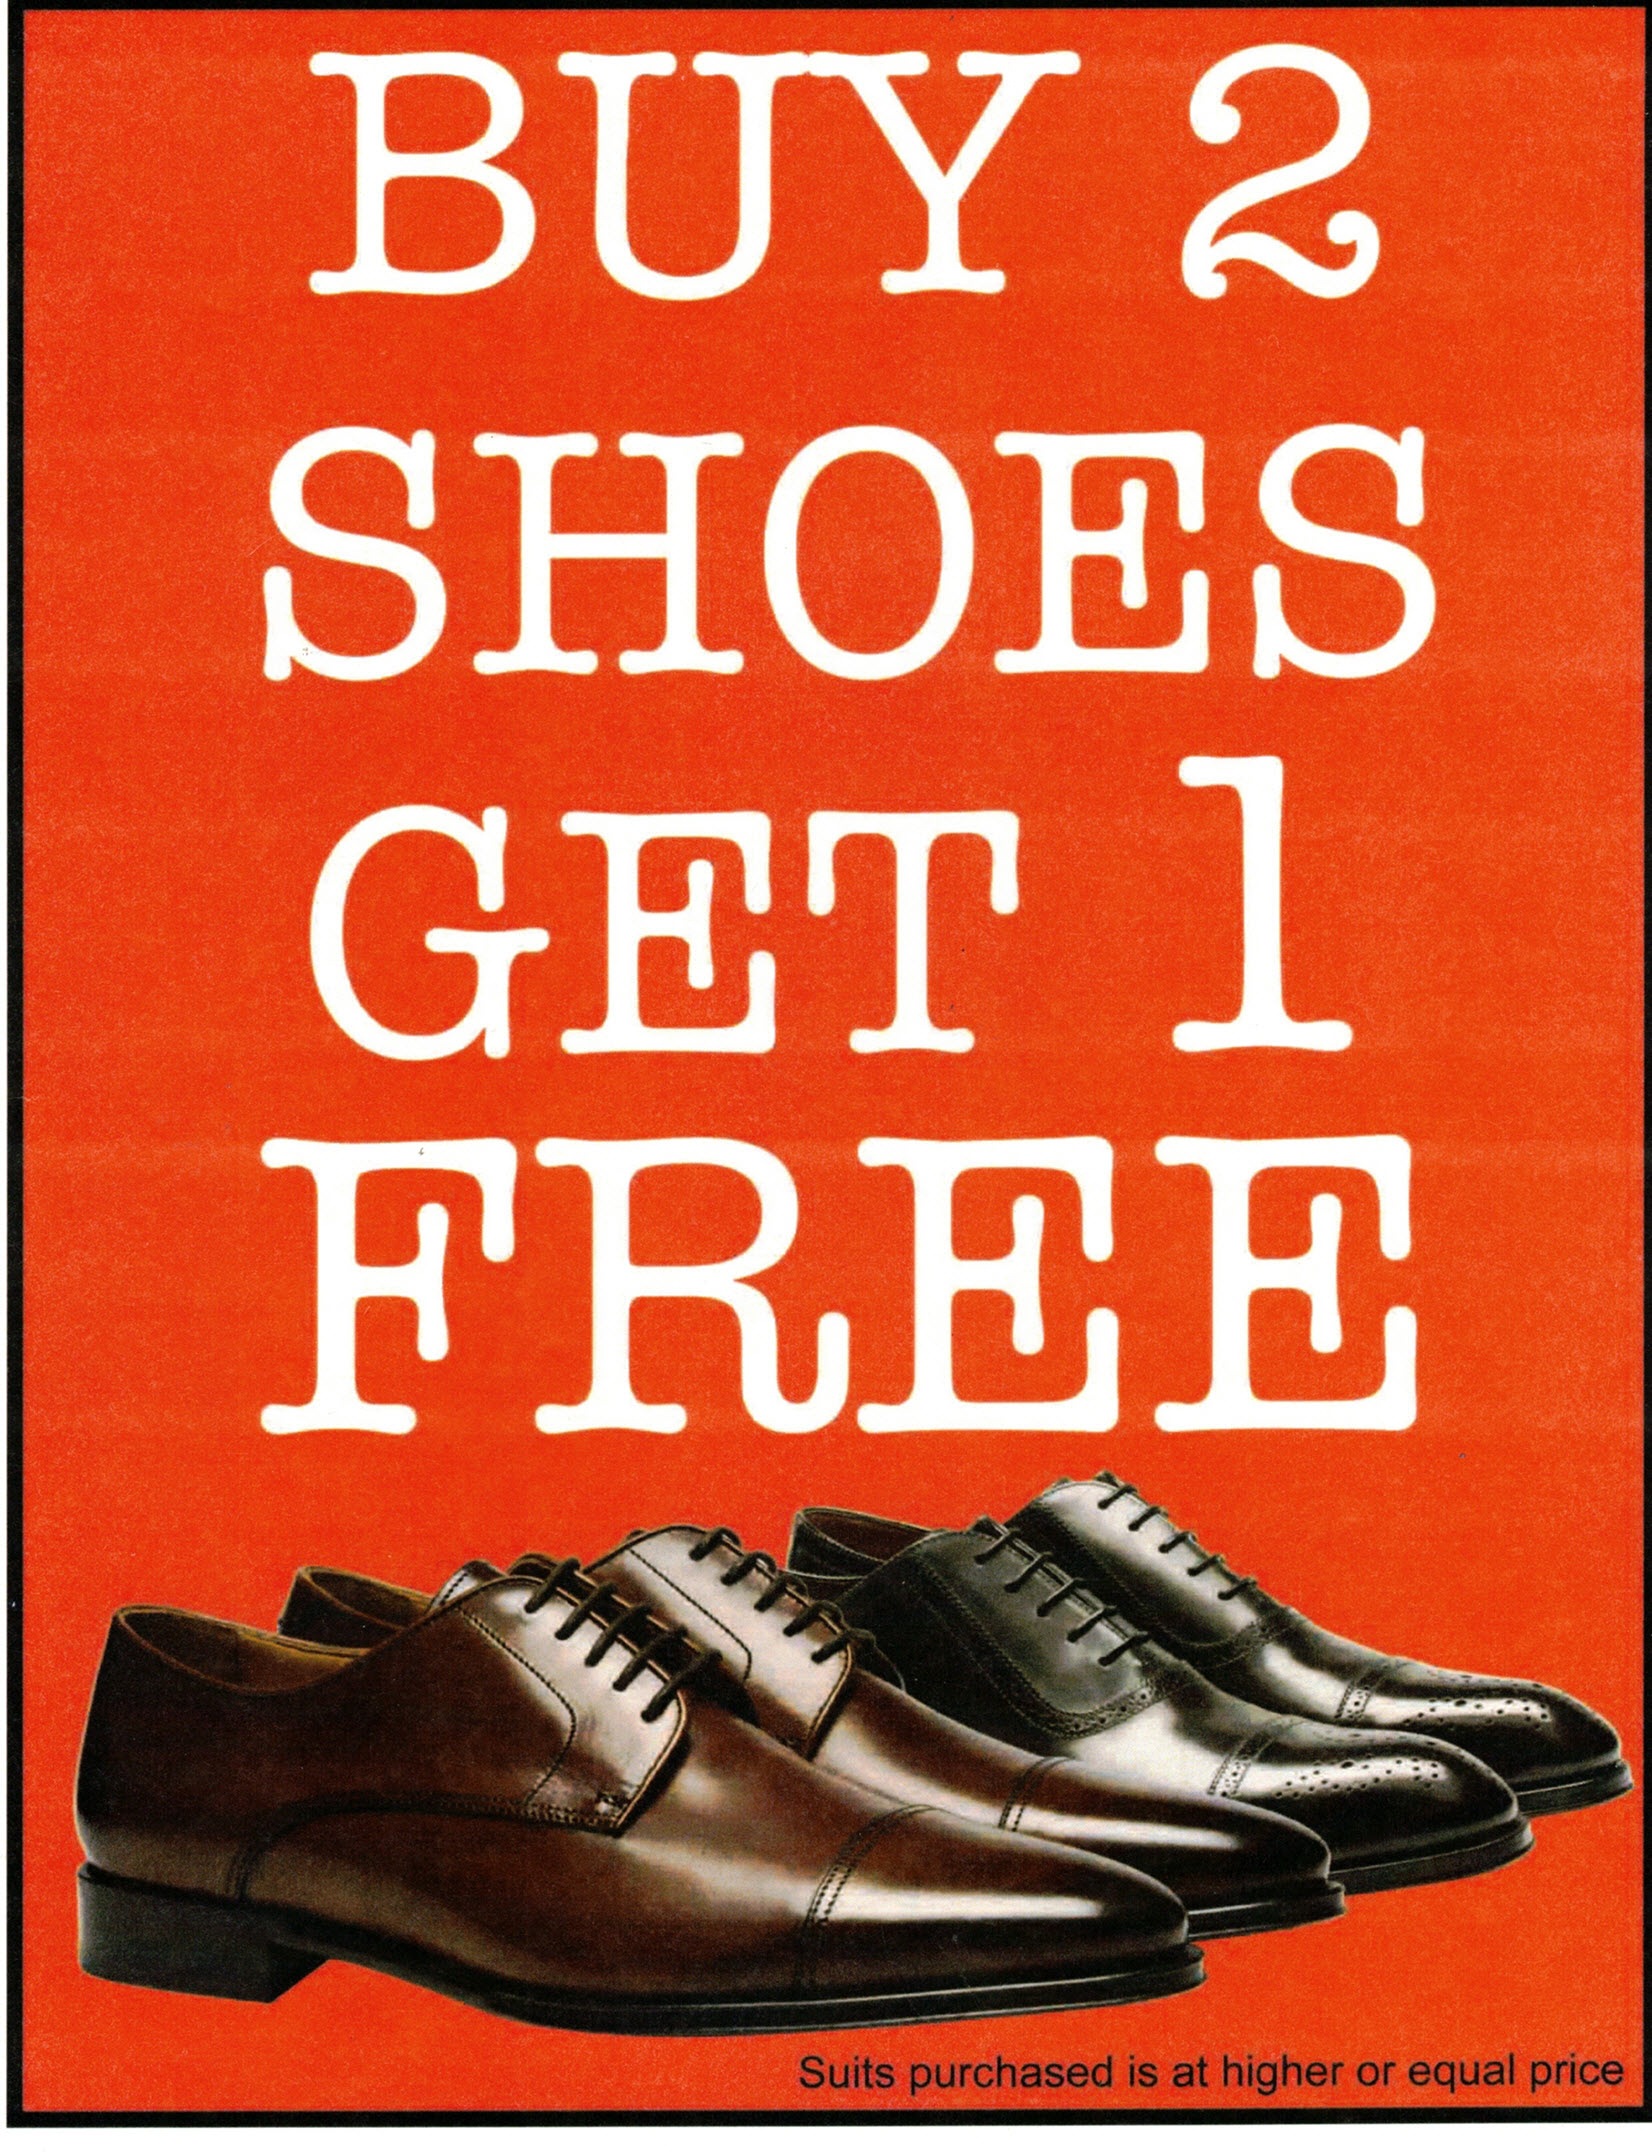 Buy 2 Shoes get 1 Free from Trendy Man